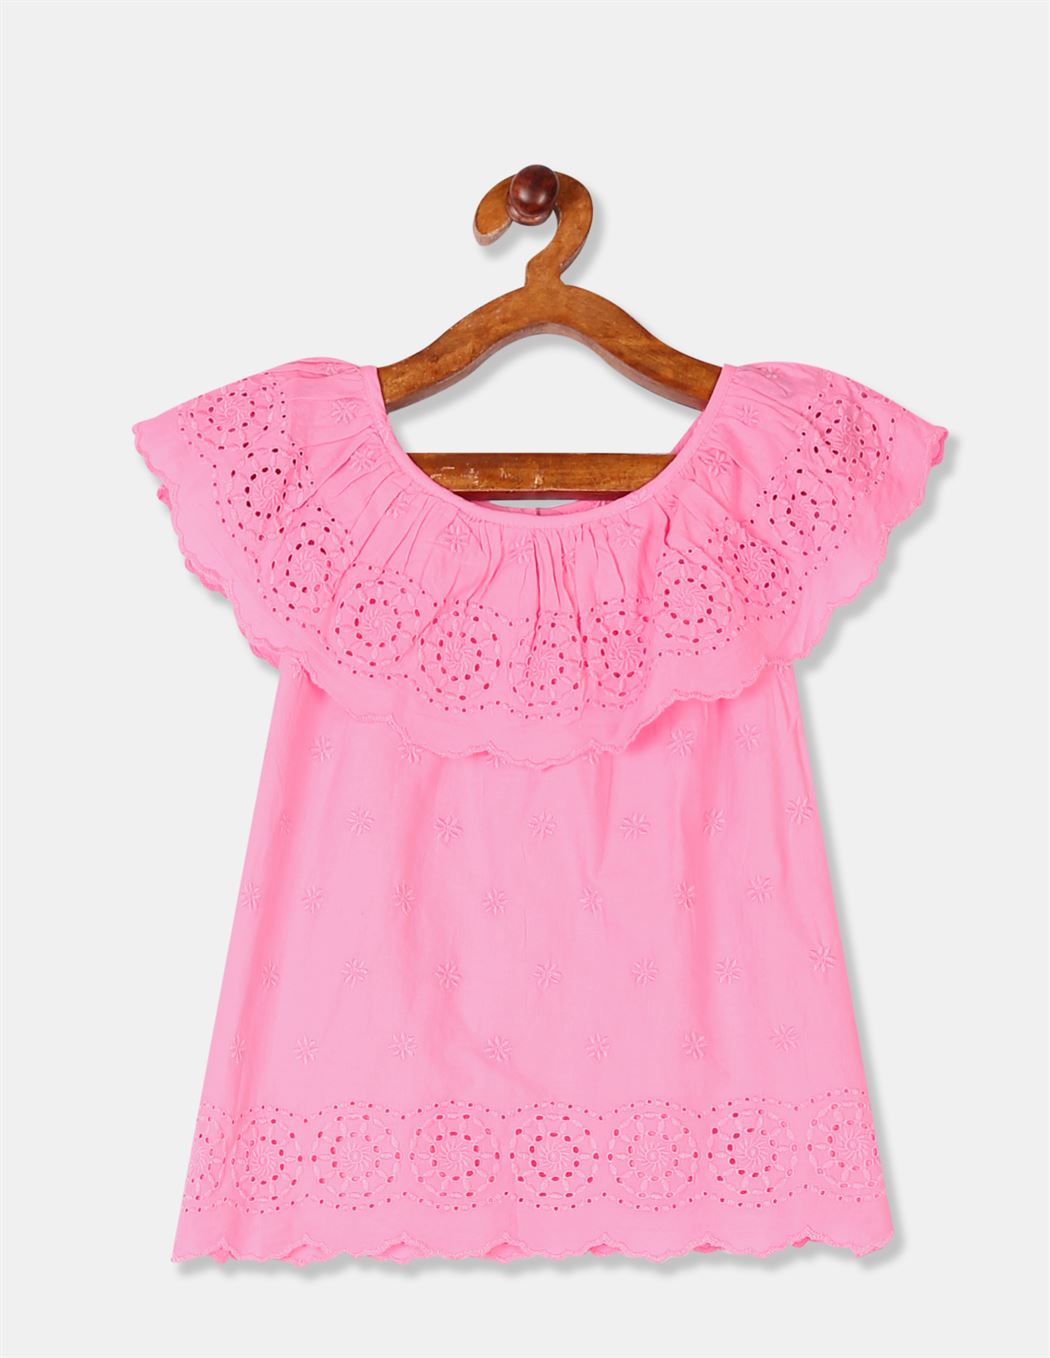 GAP Girls Pink Embroidered Top